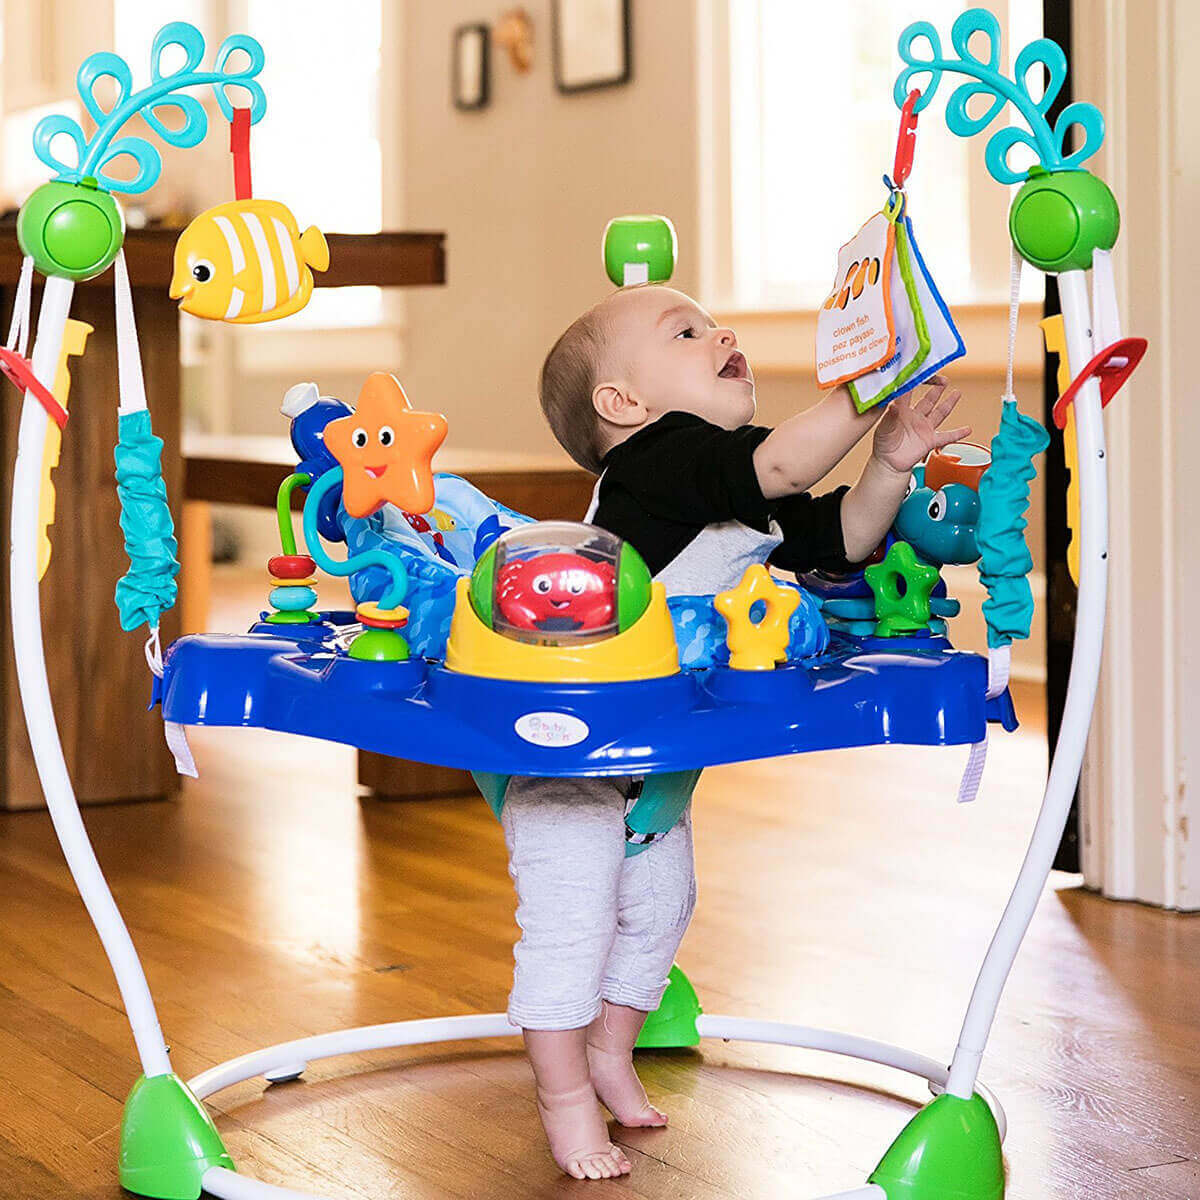 Image of a baby playing in Baby Einstein Jumper in living room.